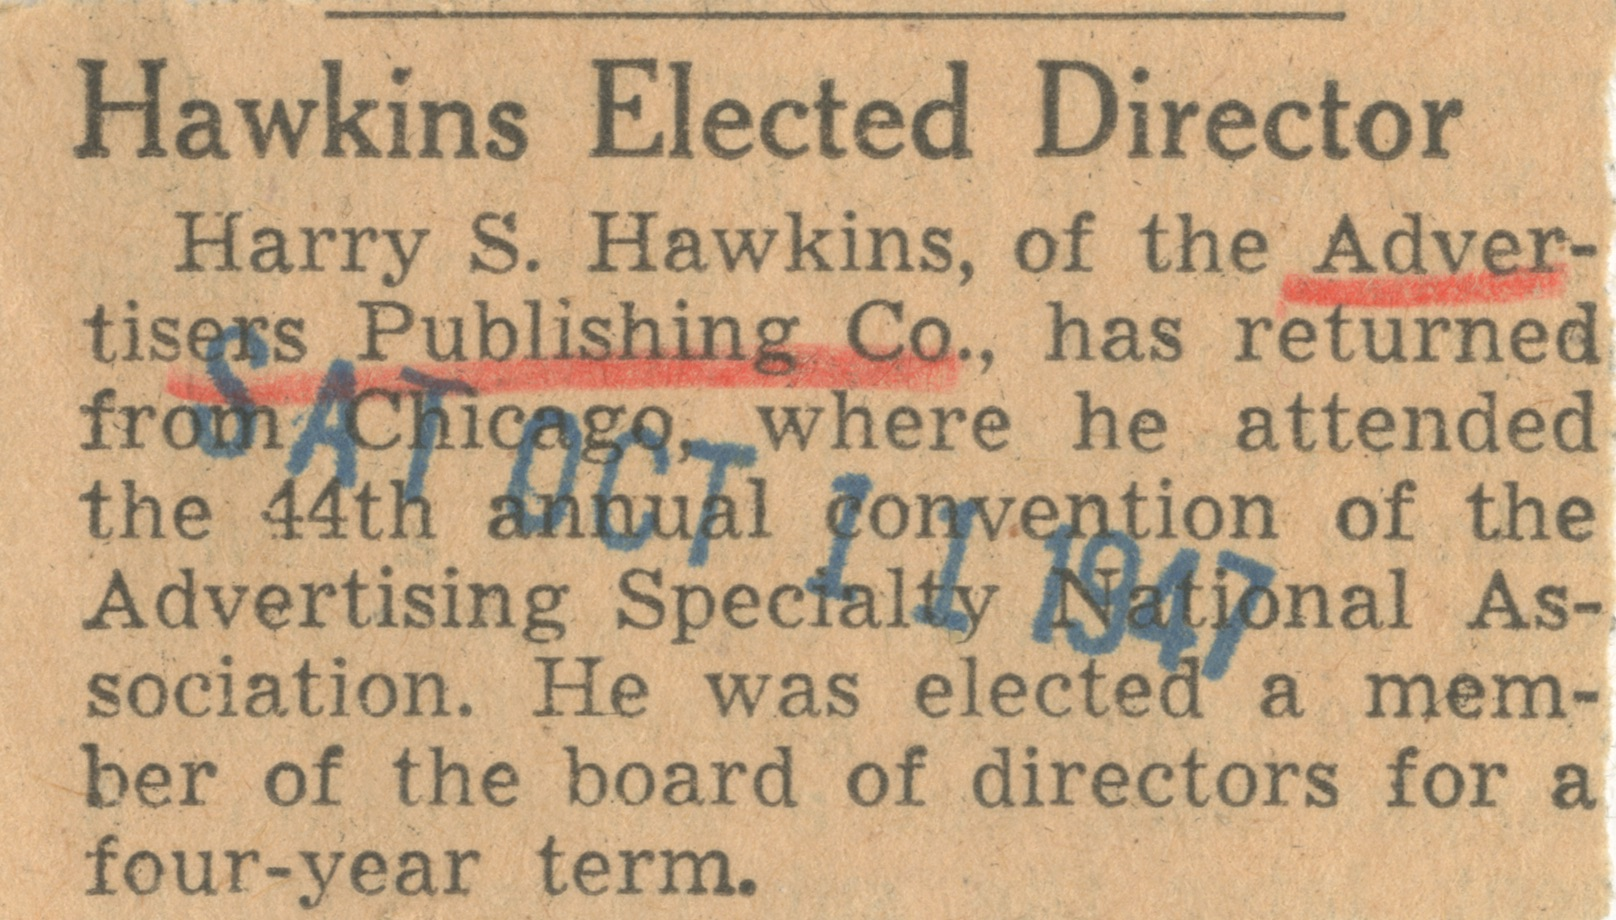 Hawkins Elected Director image